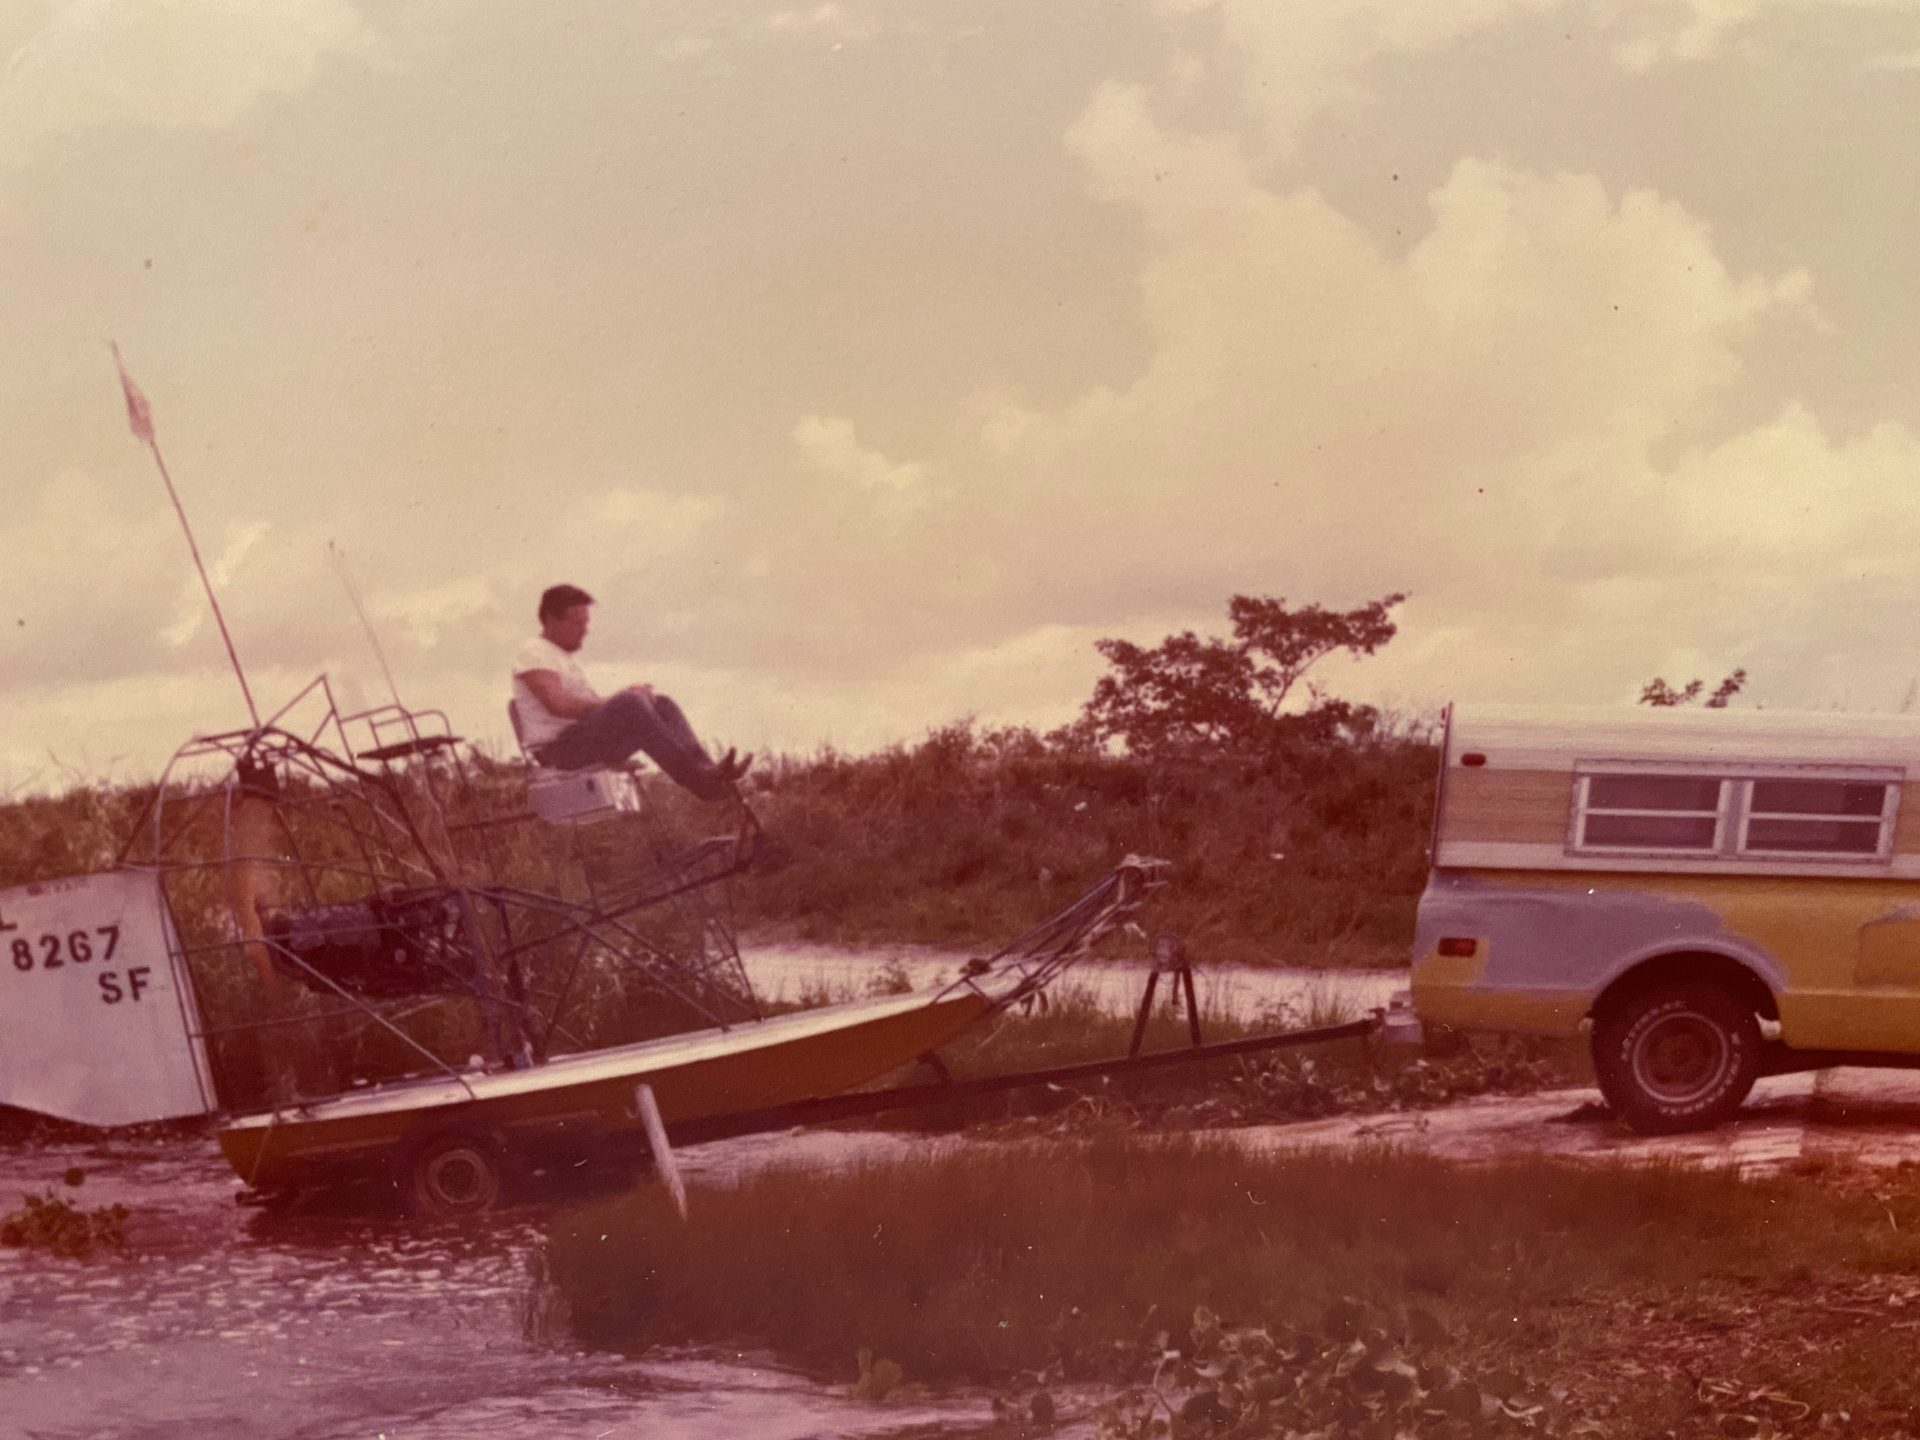 Bobby loading yellow airboat on the trailer